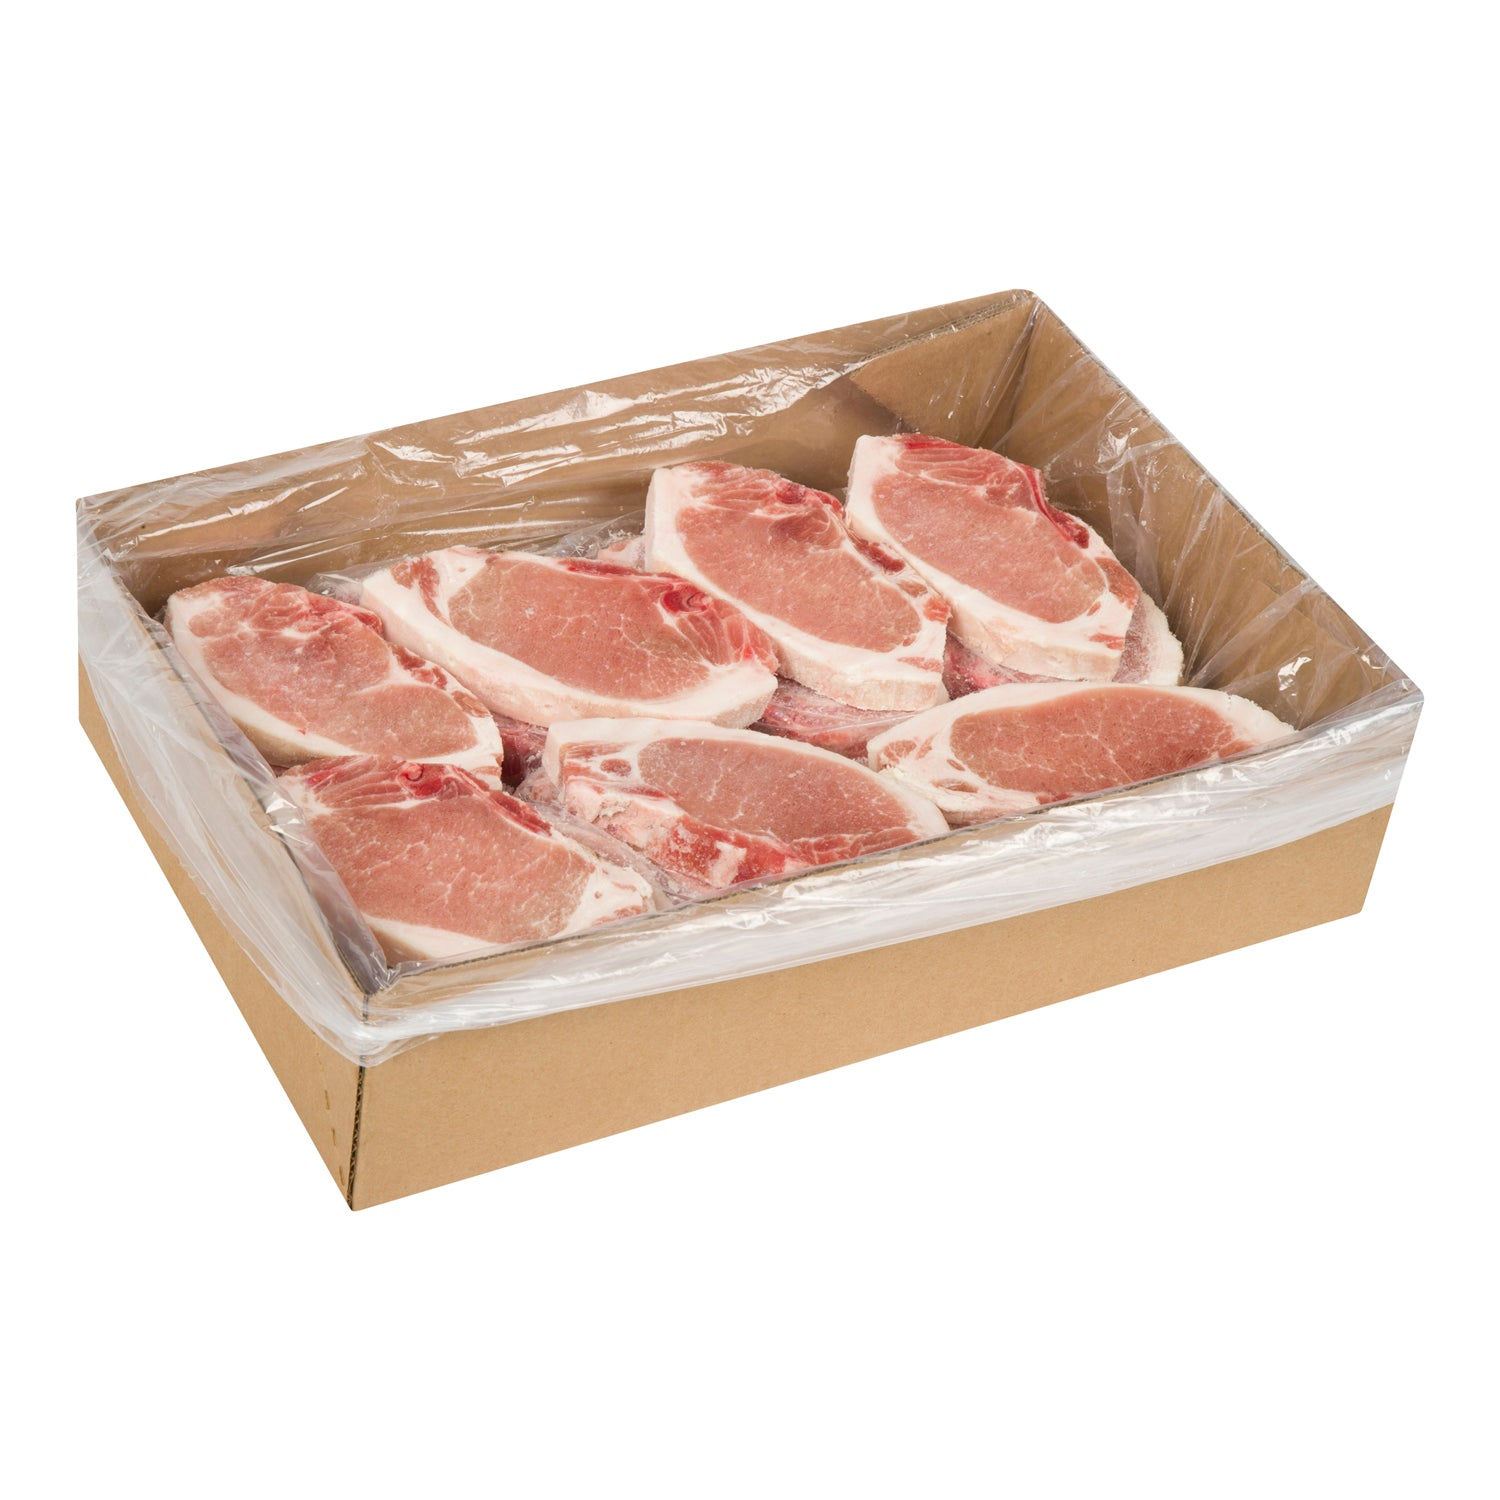 Sysco Butcher Block Frozen Centre Cut Bone-in Pork Chops 10 lb - 1 Pack [$9.50/lb]